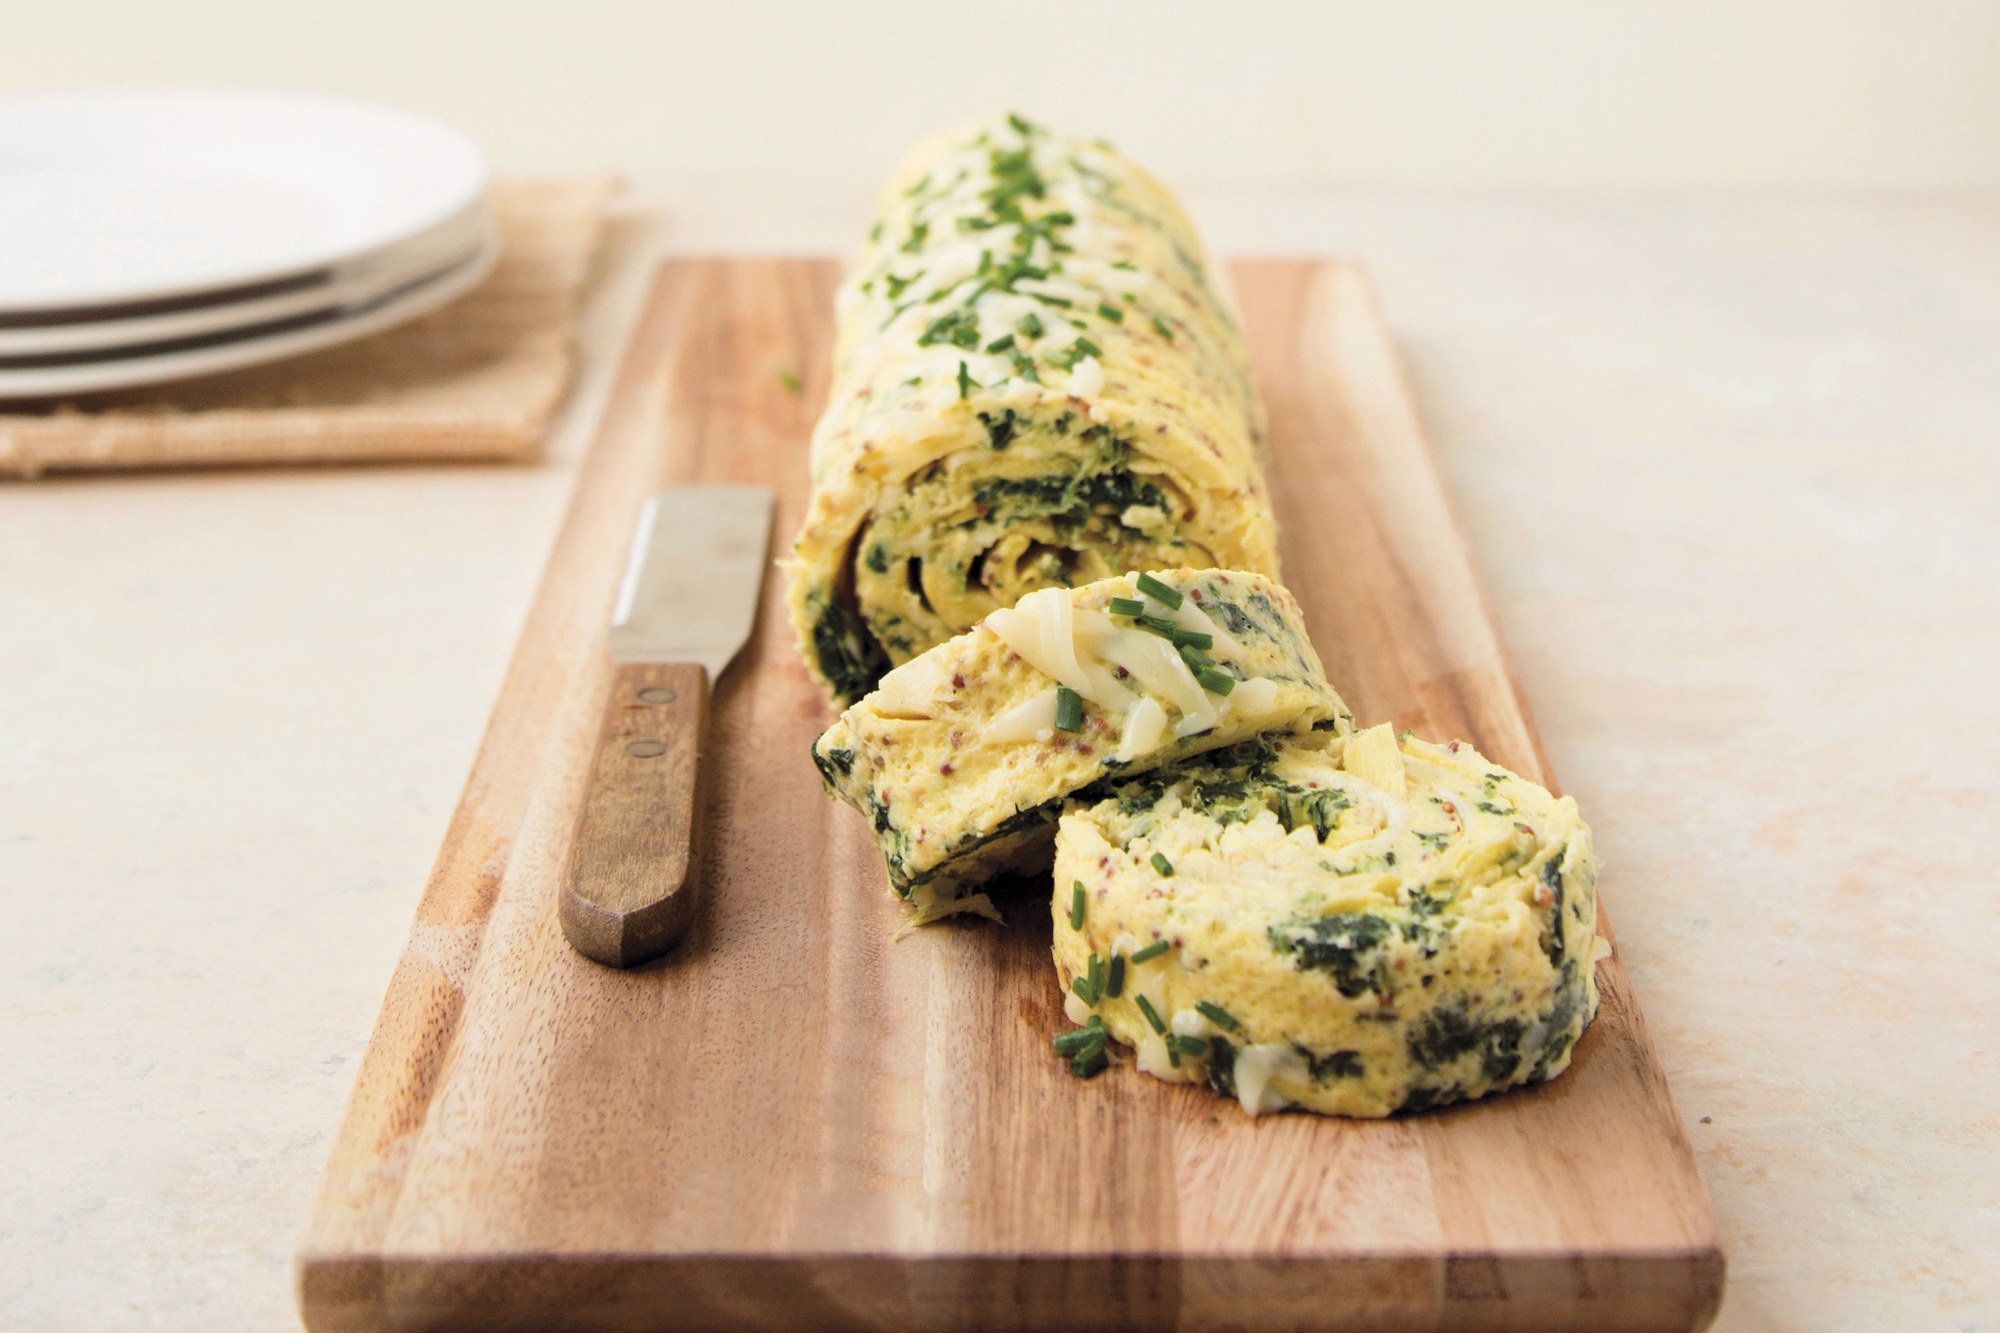 Spinach and Artichoke Omelet Wheels